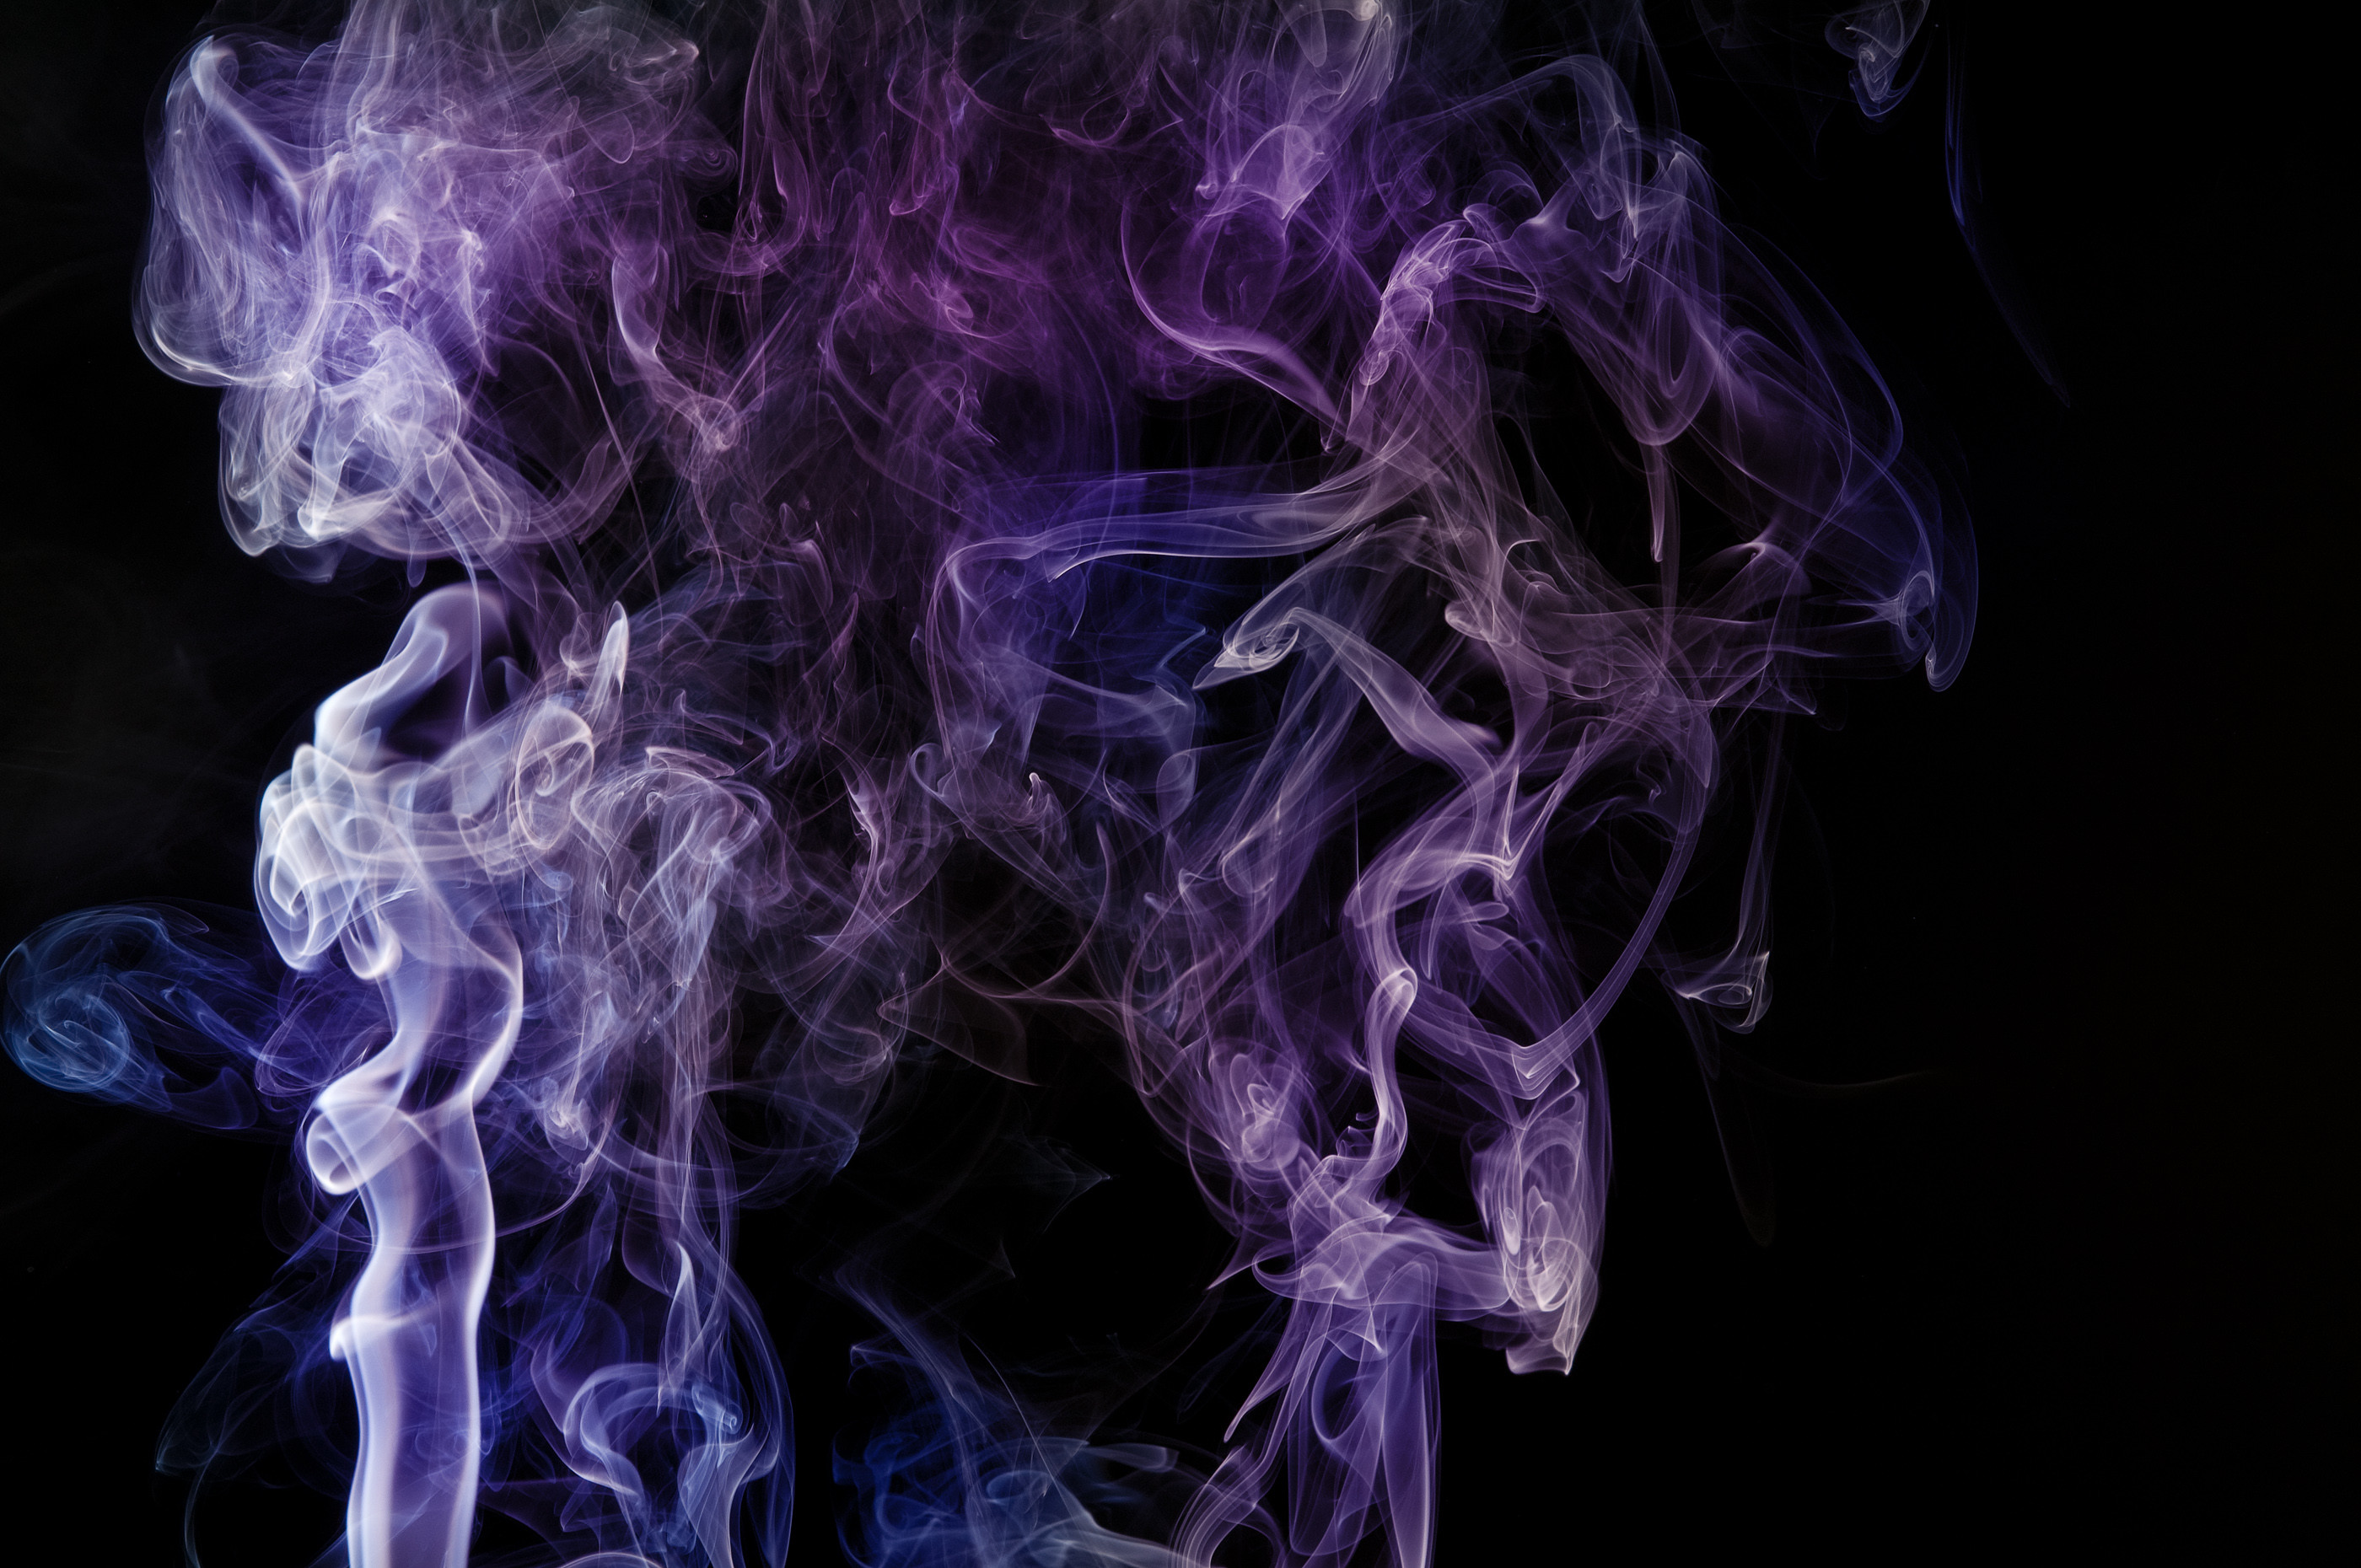 2800x1860 Smoke Tumblr Wallpapers Background Fog Cloud Hd Colorful Green Weed #7901